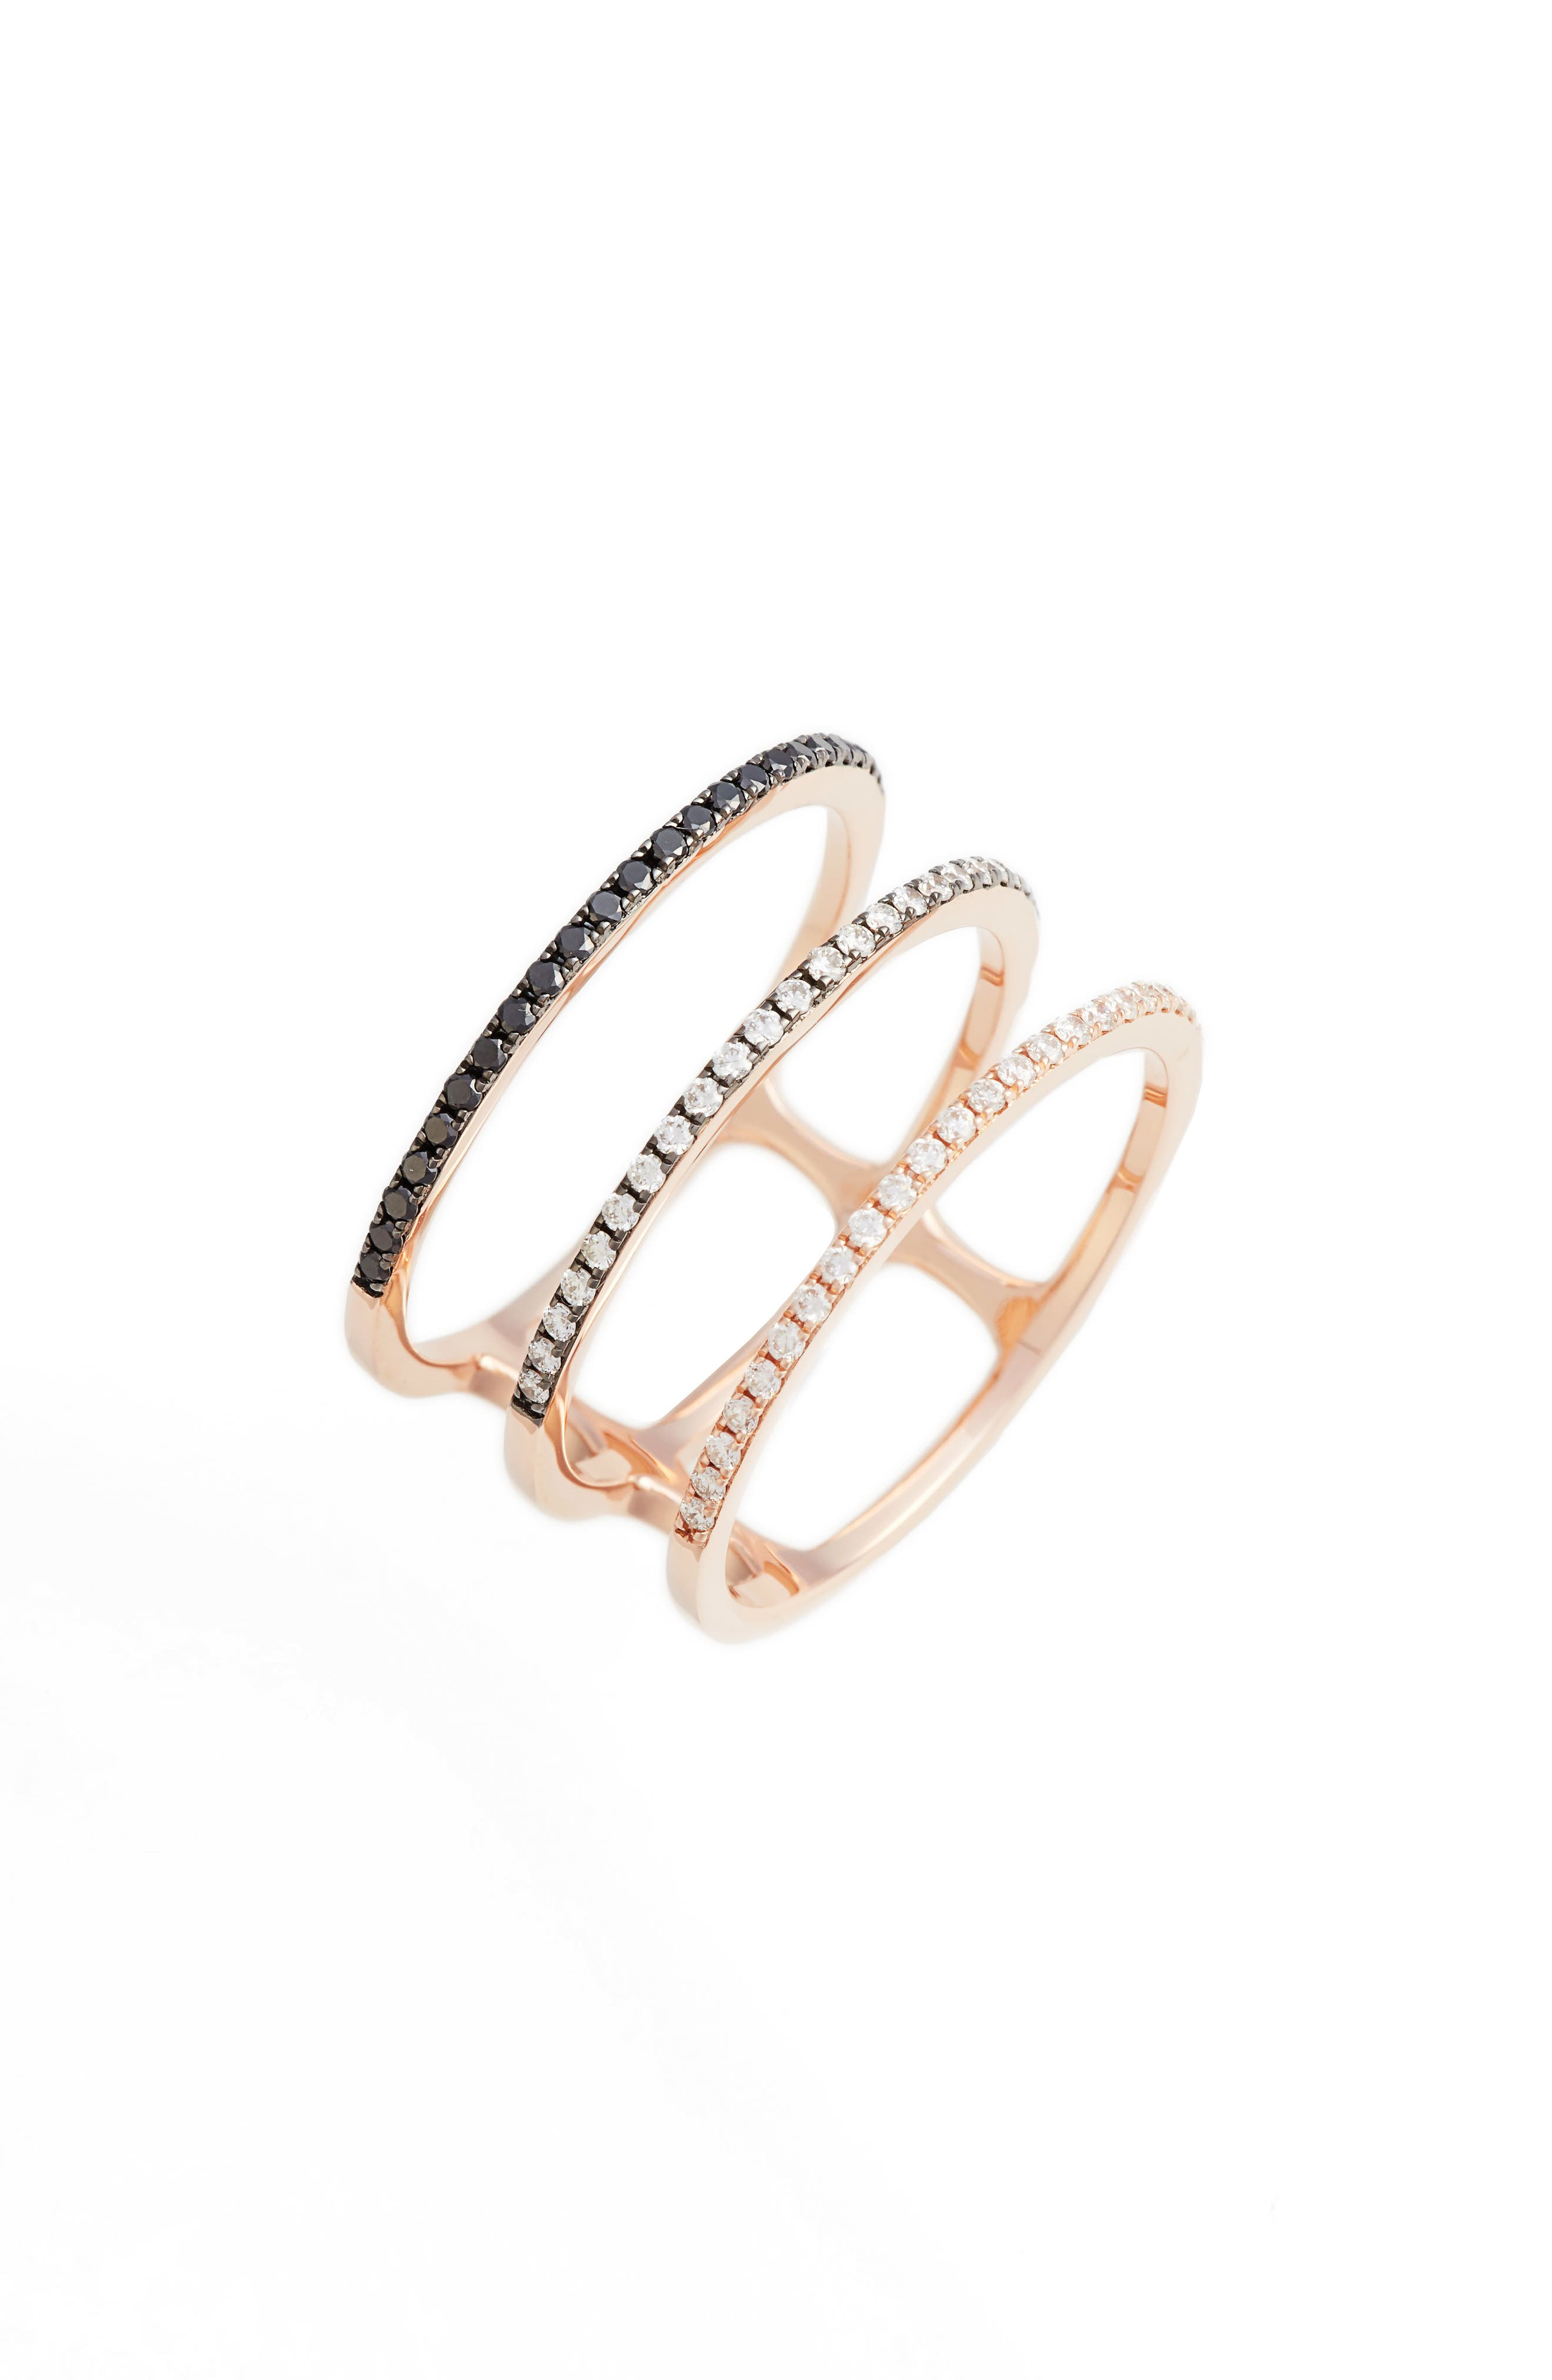 Diamond Triple Fade Stacking Ring,                         Main,                         color, ROSE GOLD